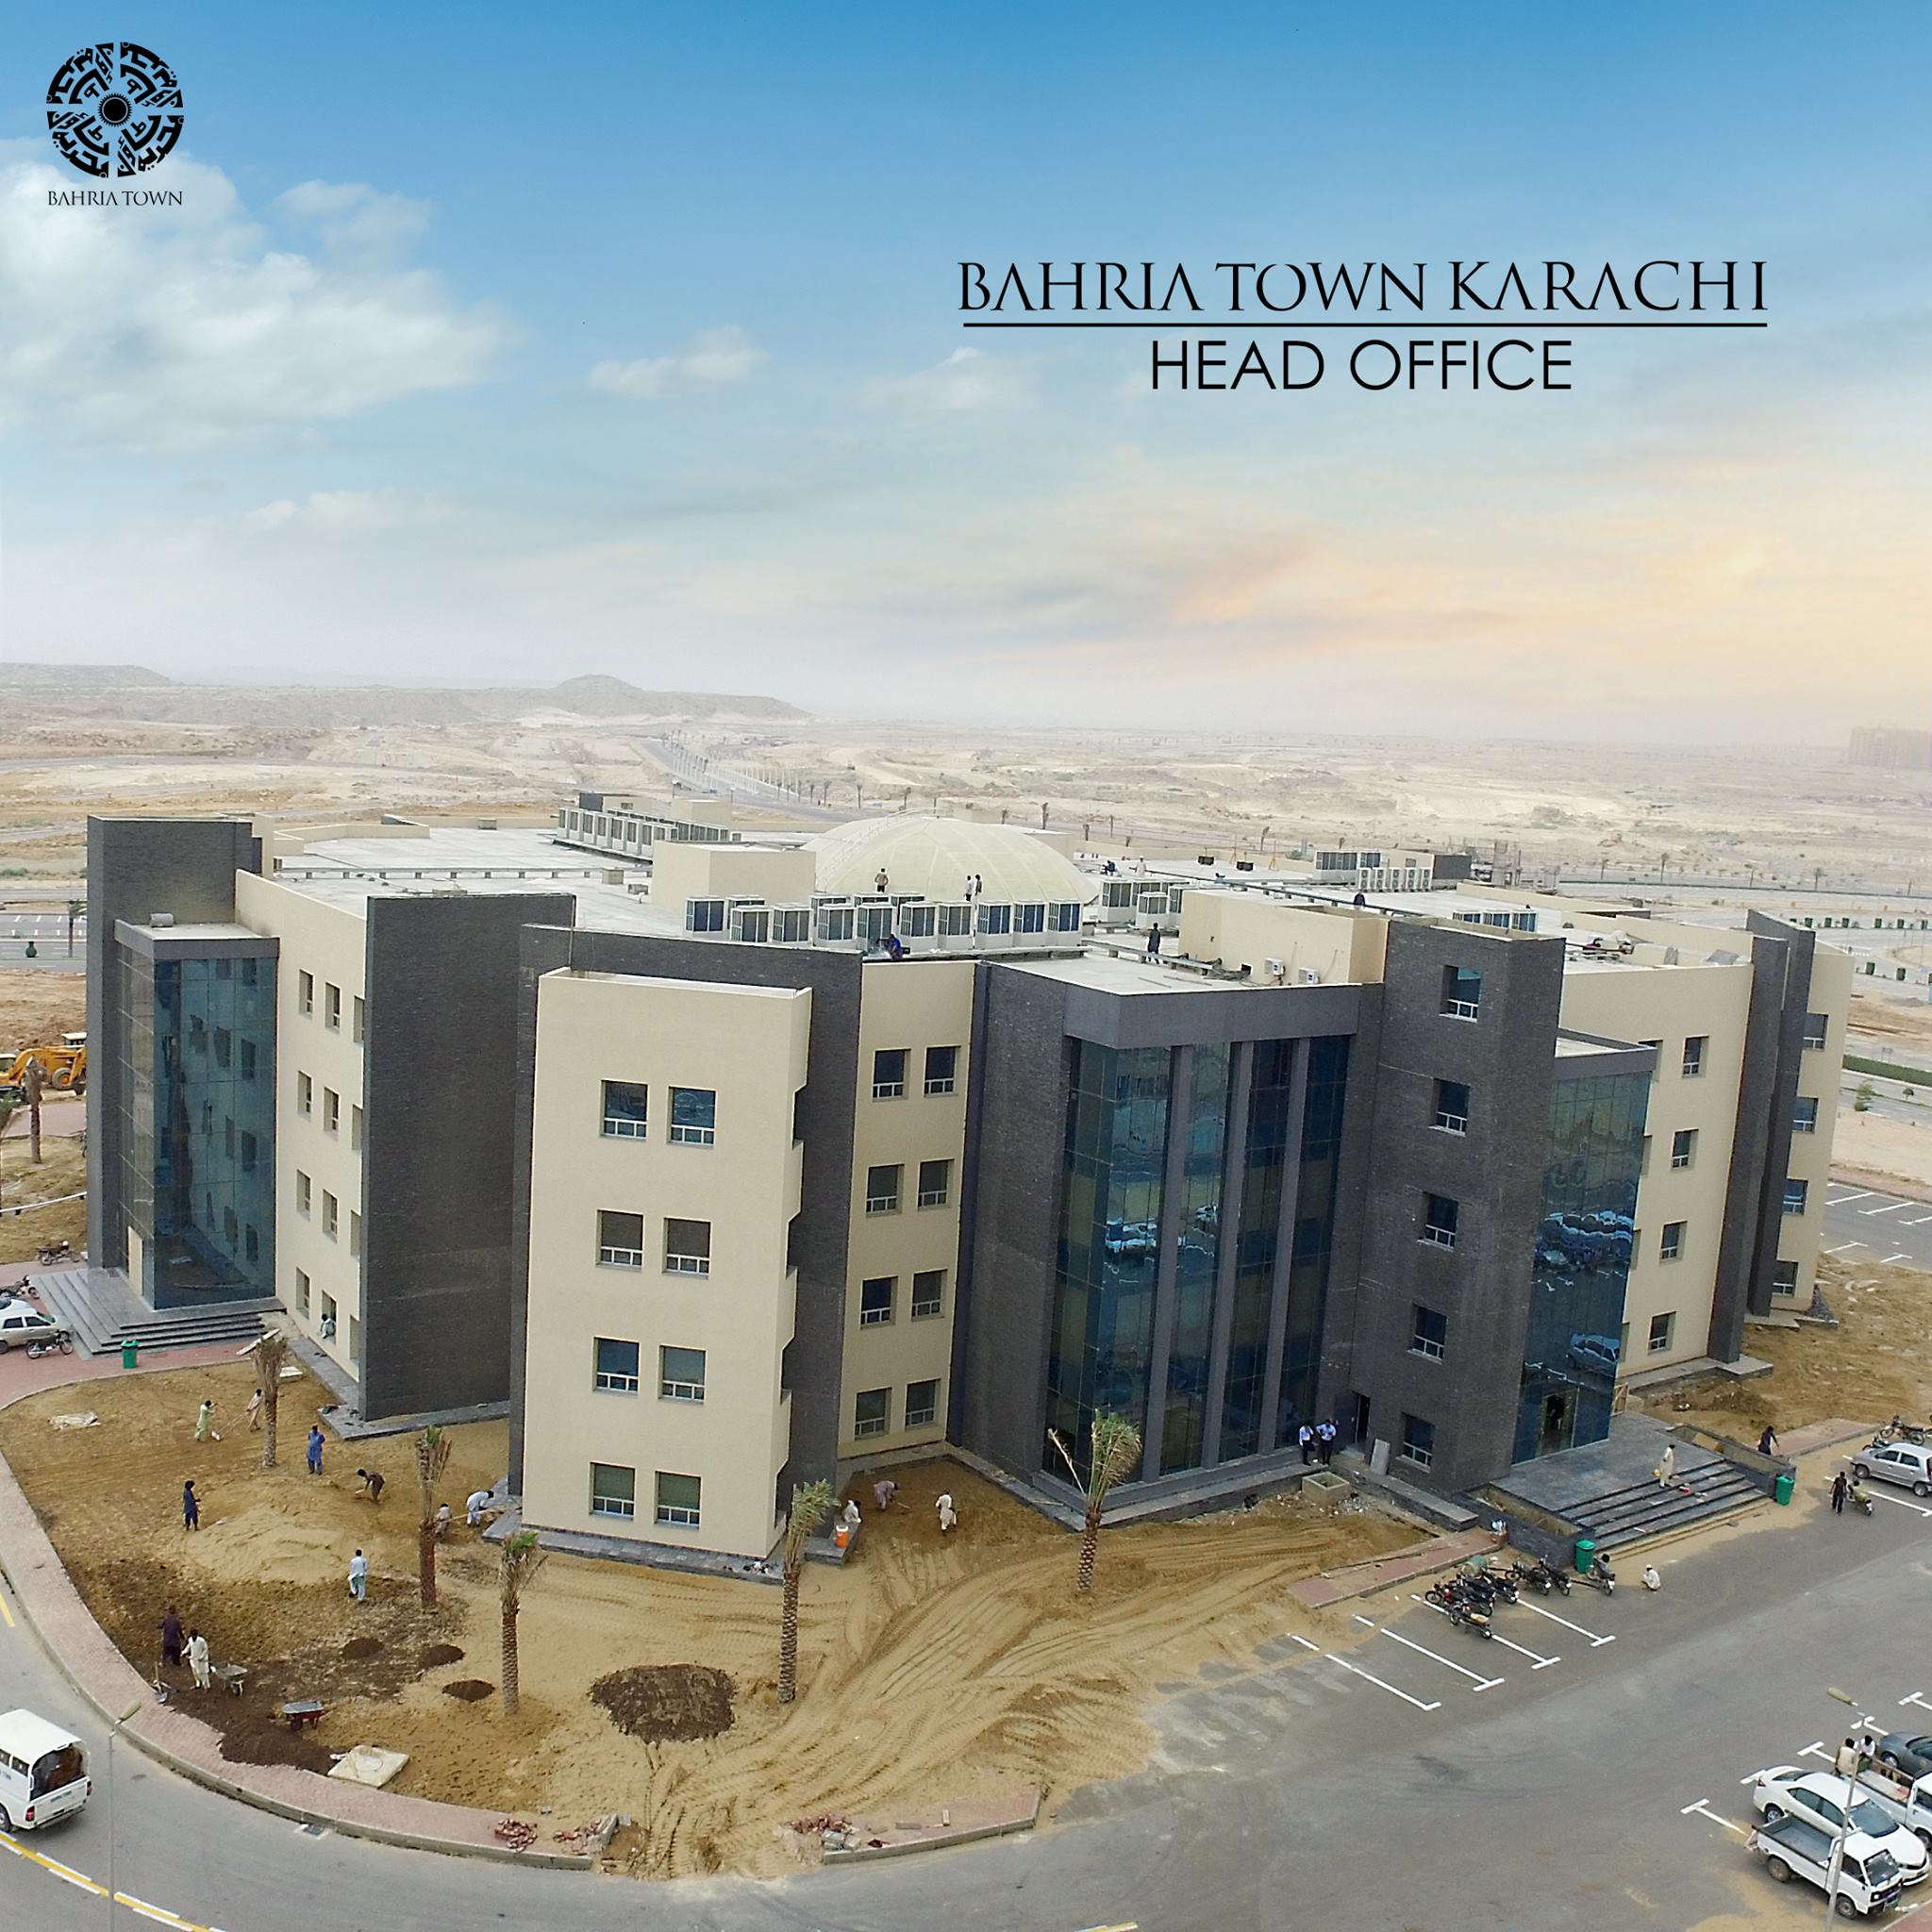 Bahria-Town-Karachi-Head-Office-Midway-Commercial1-1